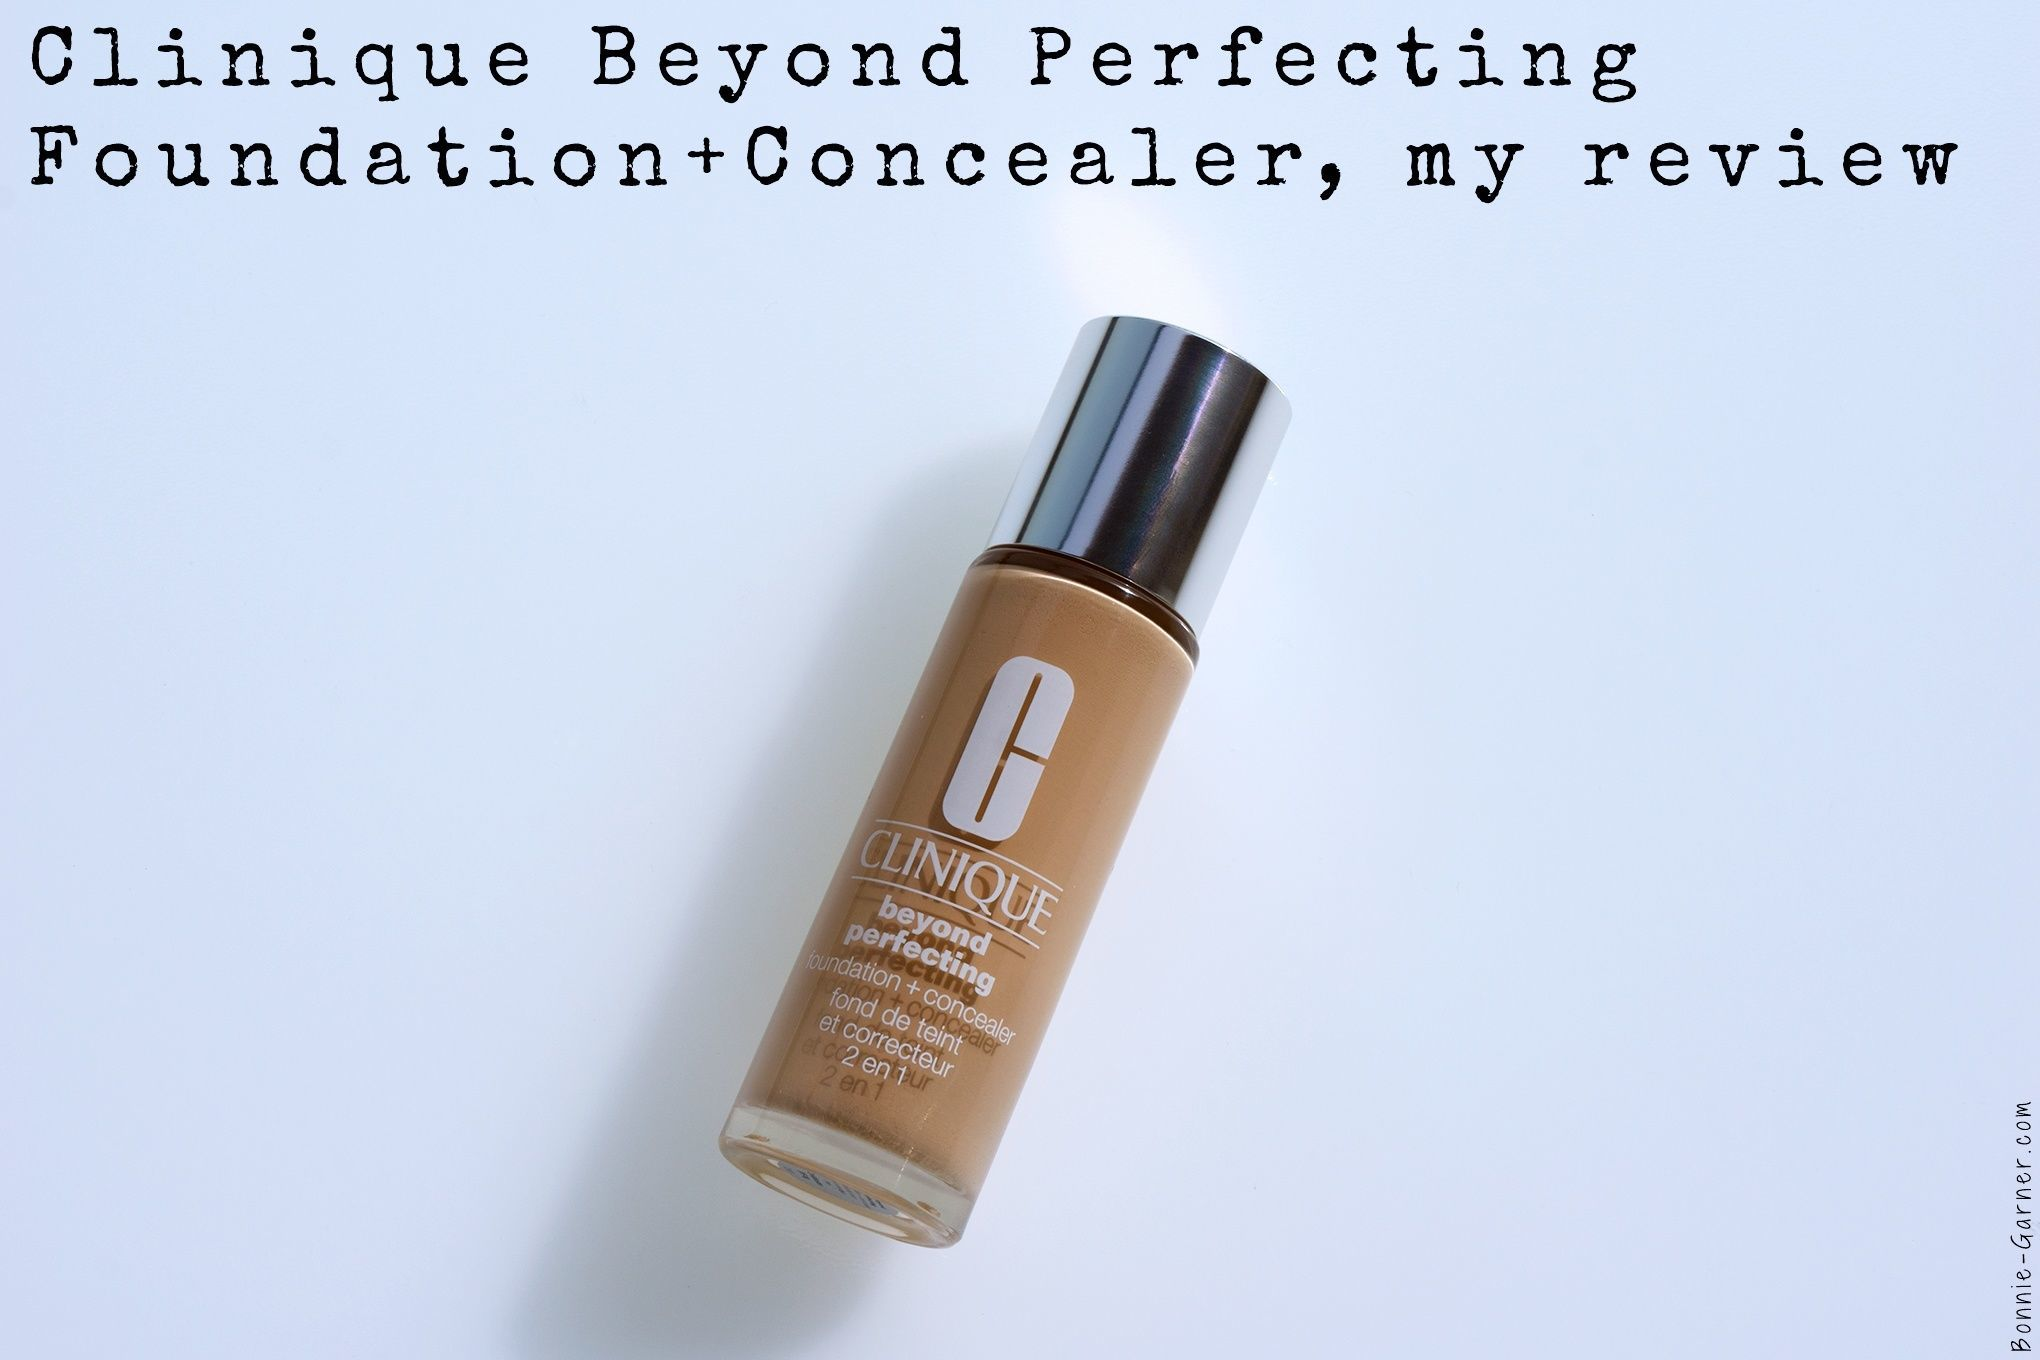 Clinique Beyond Perfecting Foundation+Concealer, my review